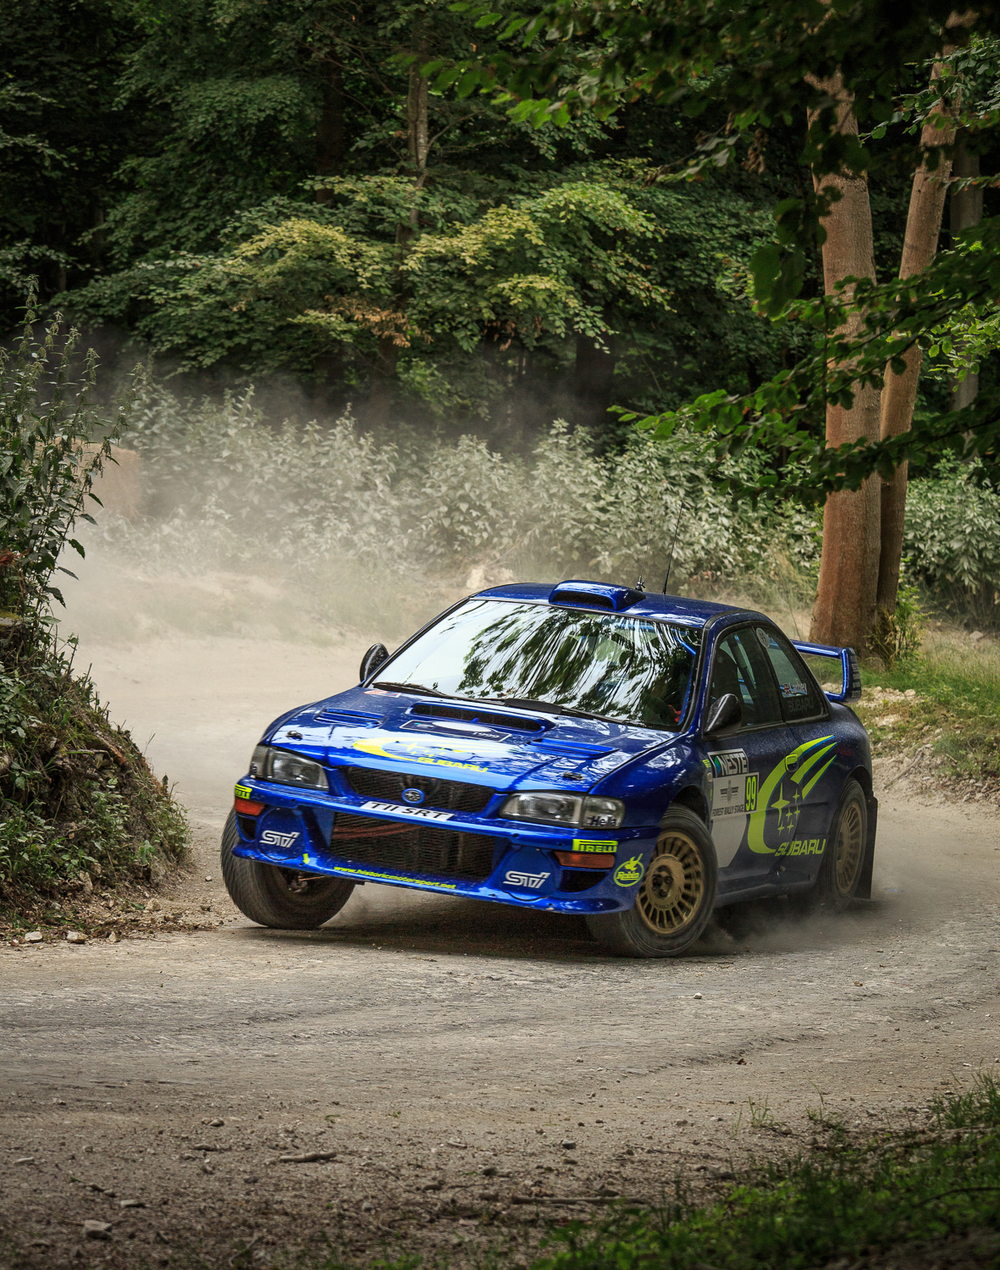 Subaru on the rally stage at Goodwood Festival of Speed 2015